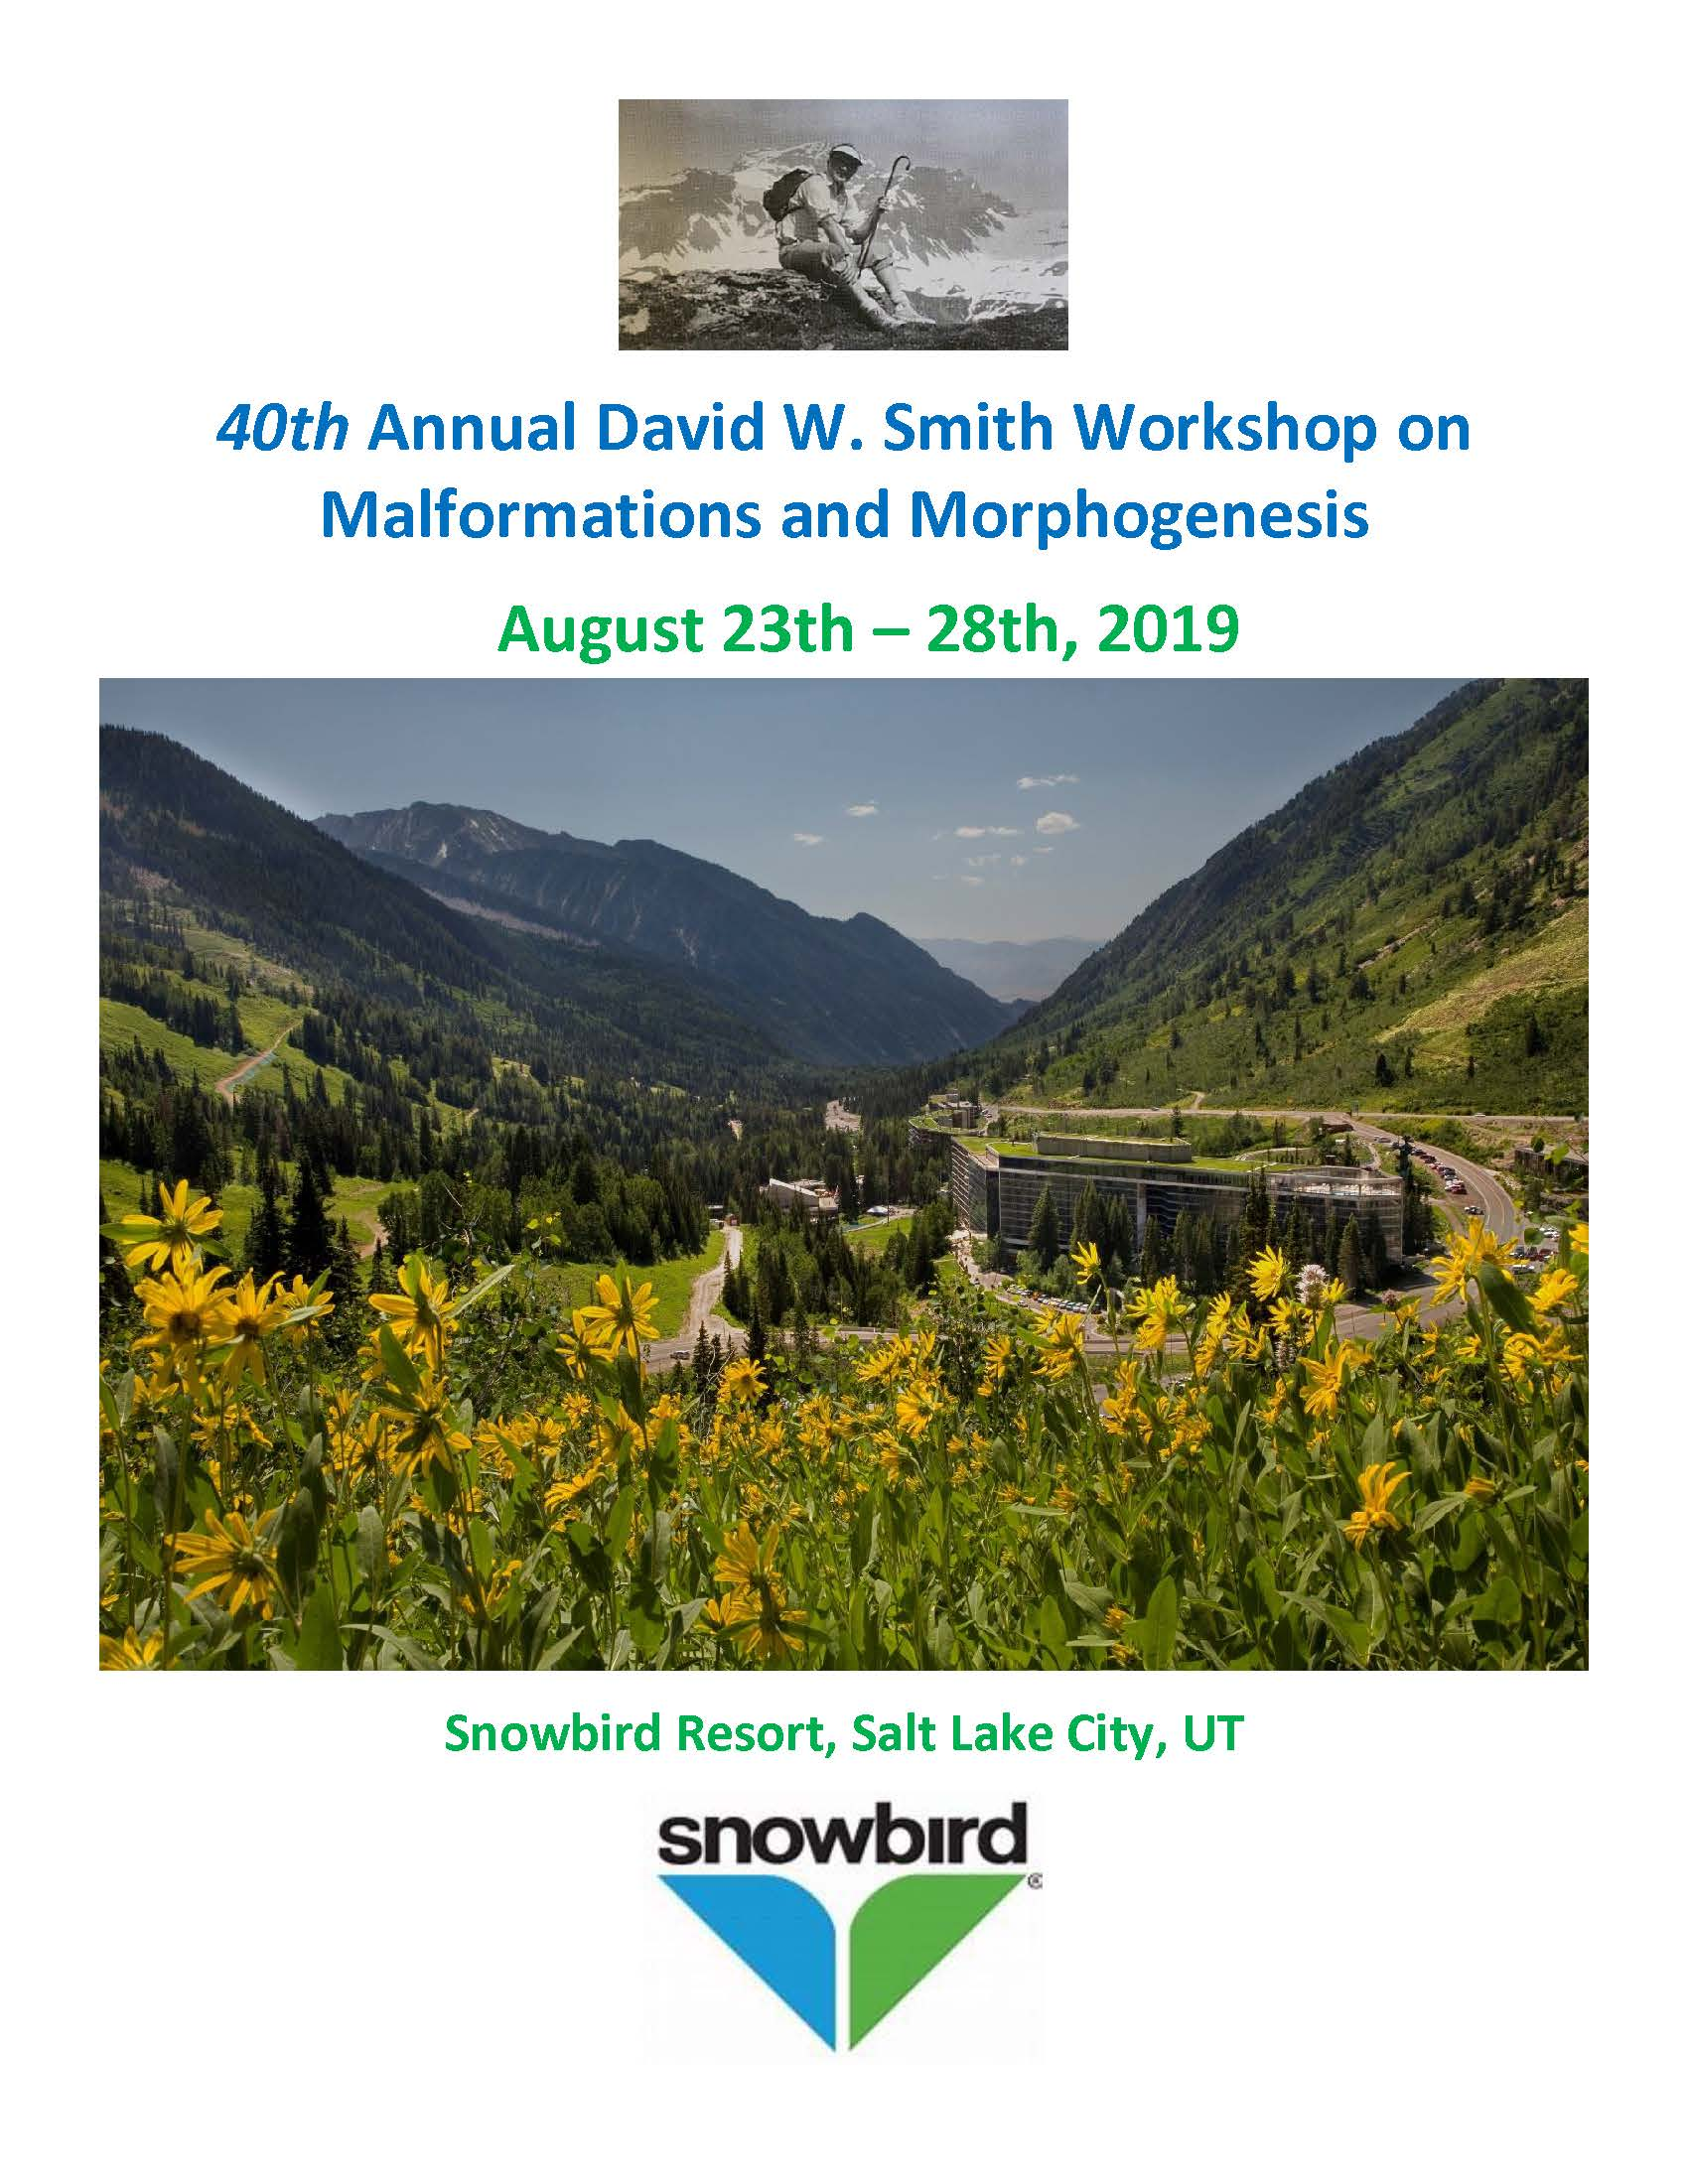 40th Annual David W. Smith Workshop on Malformations and Morphogenesis Banner